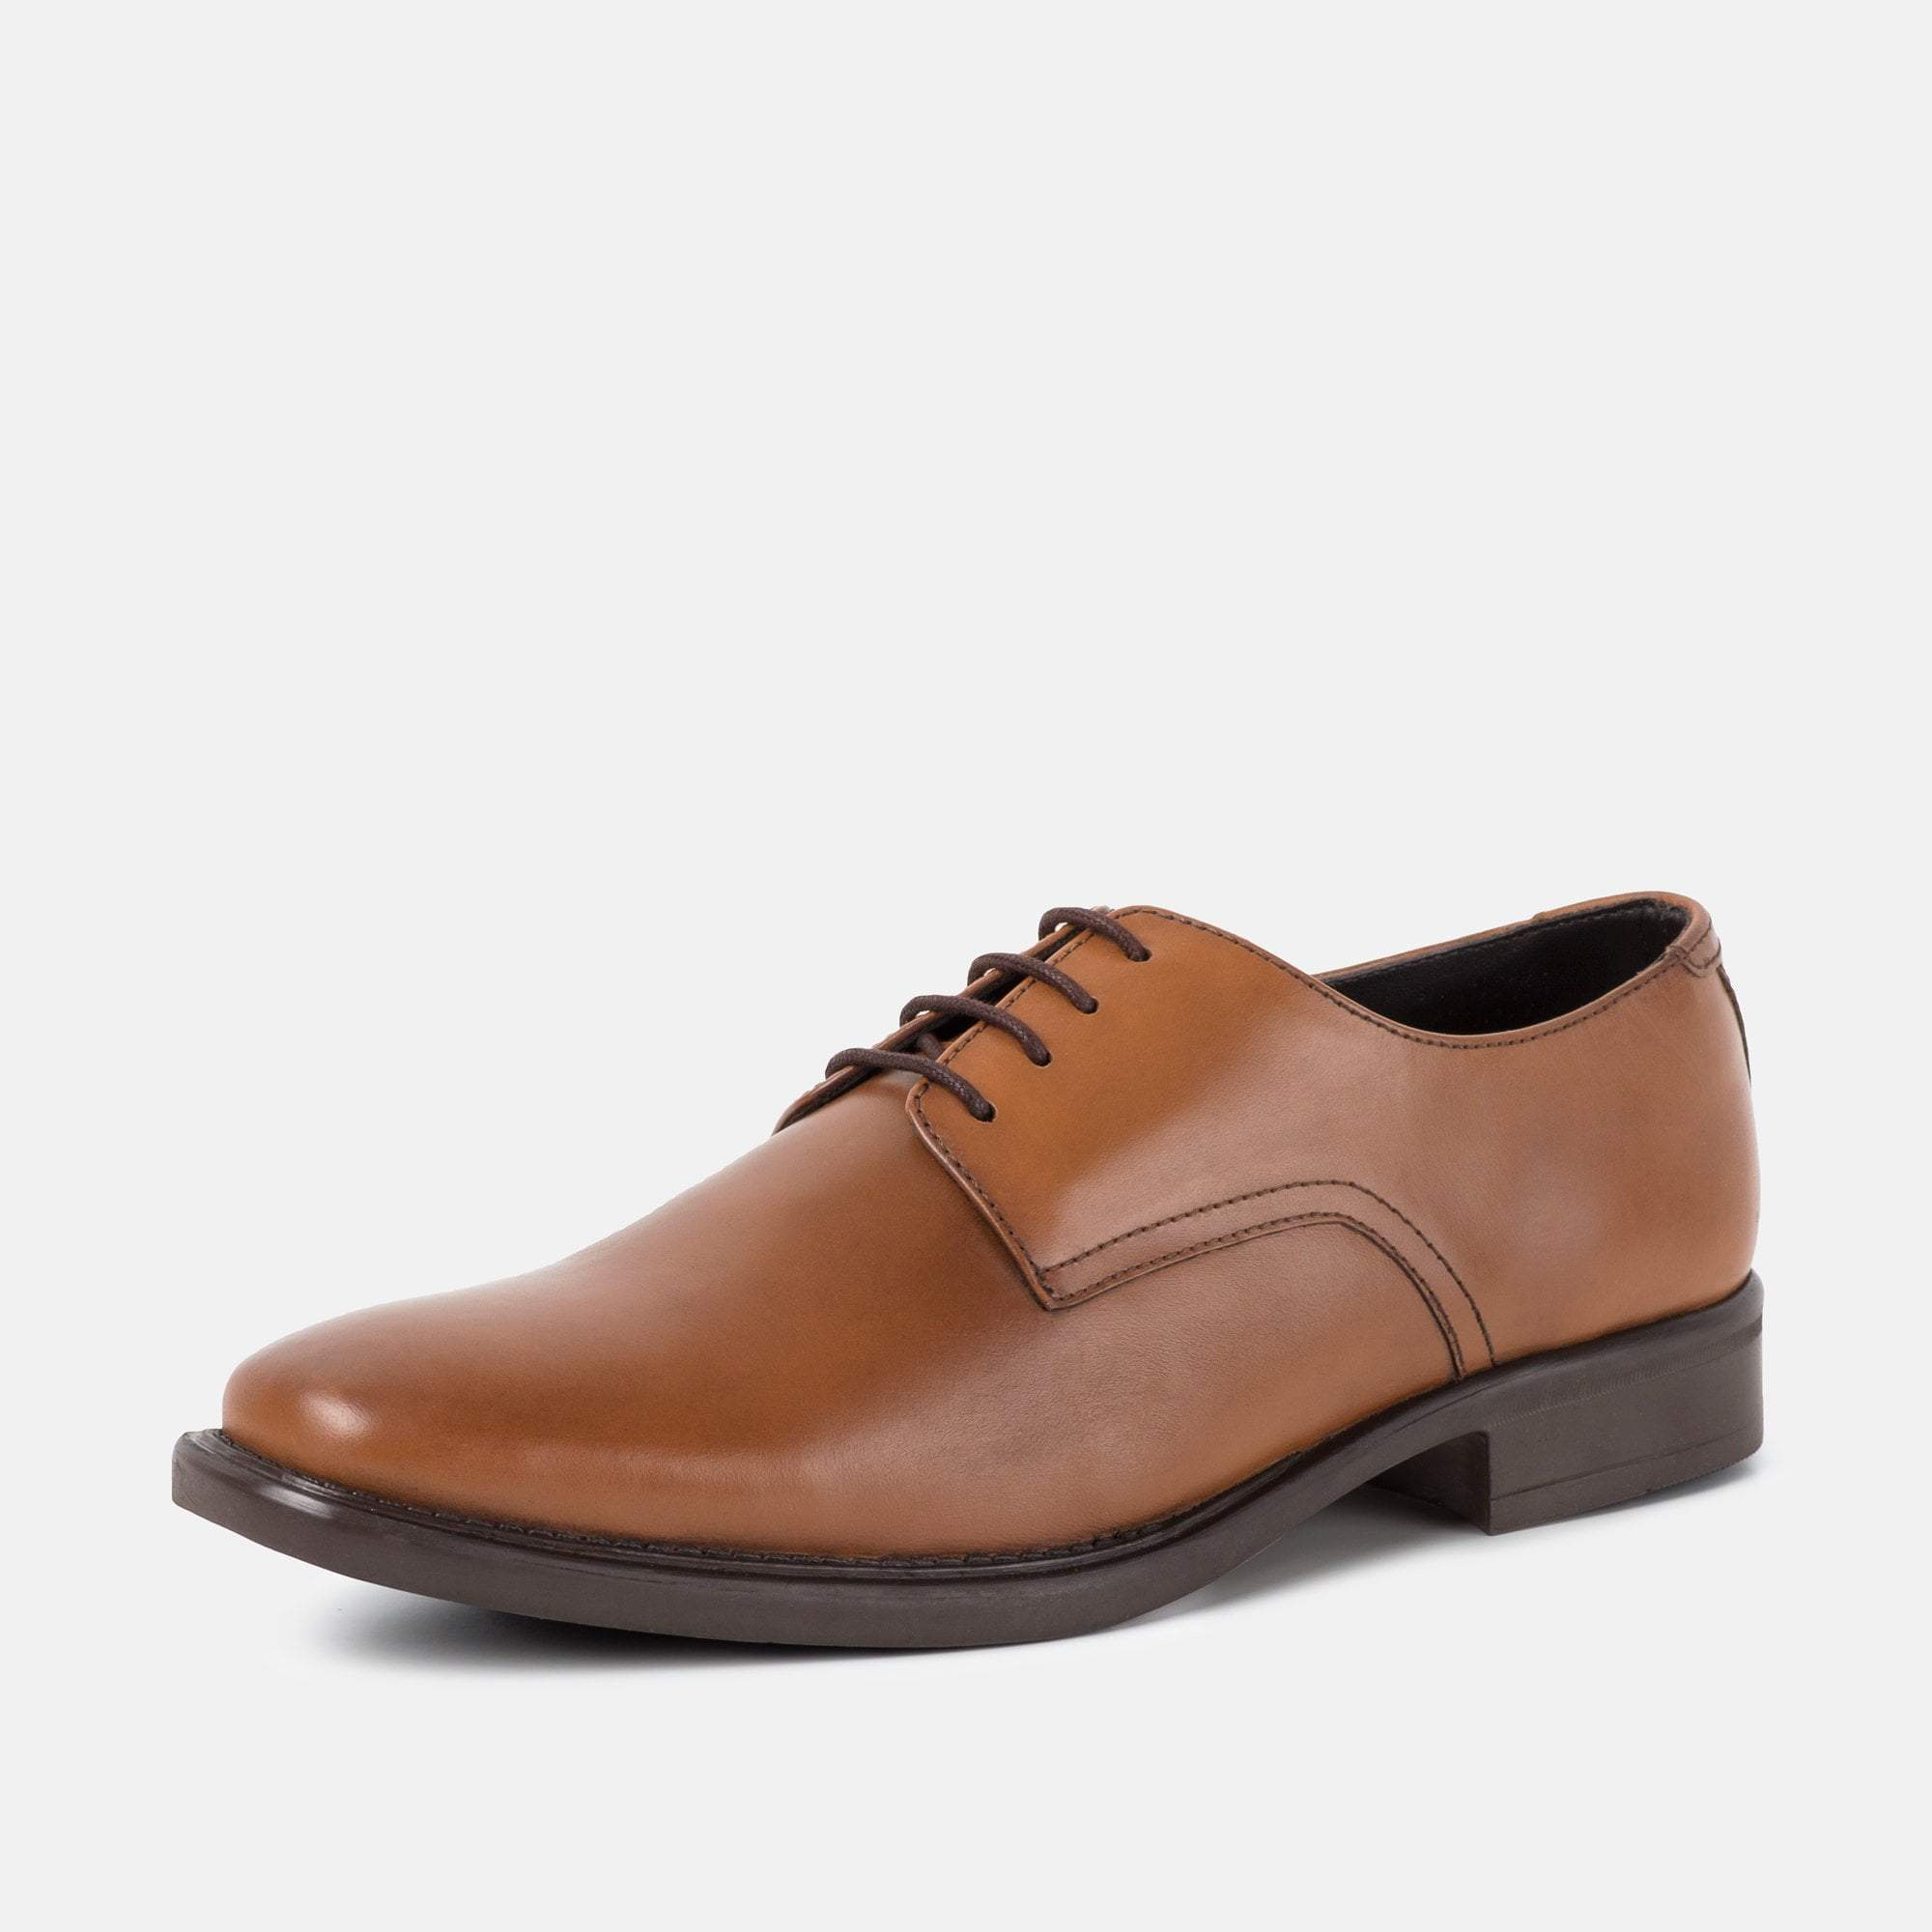 TAYLOR TAN LEATHER DERBY SHOE